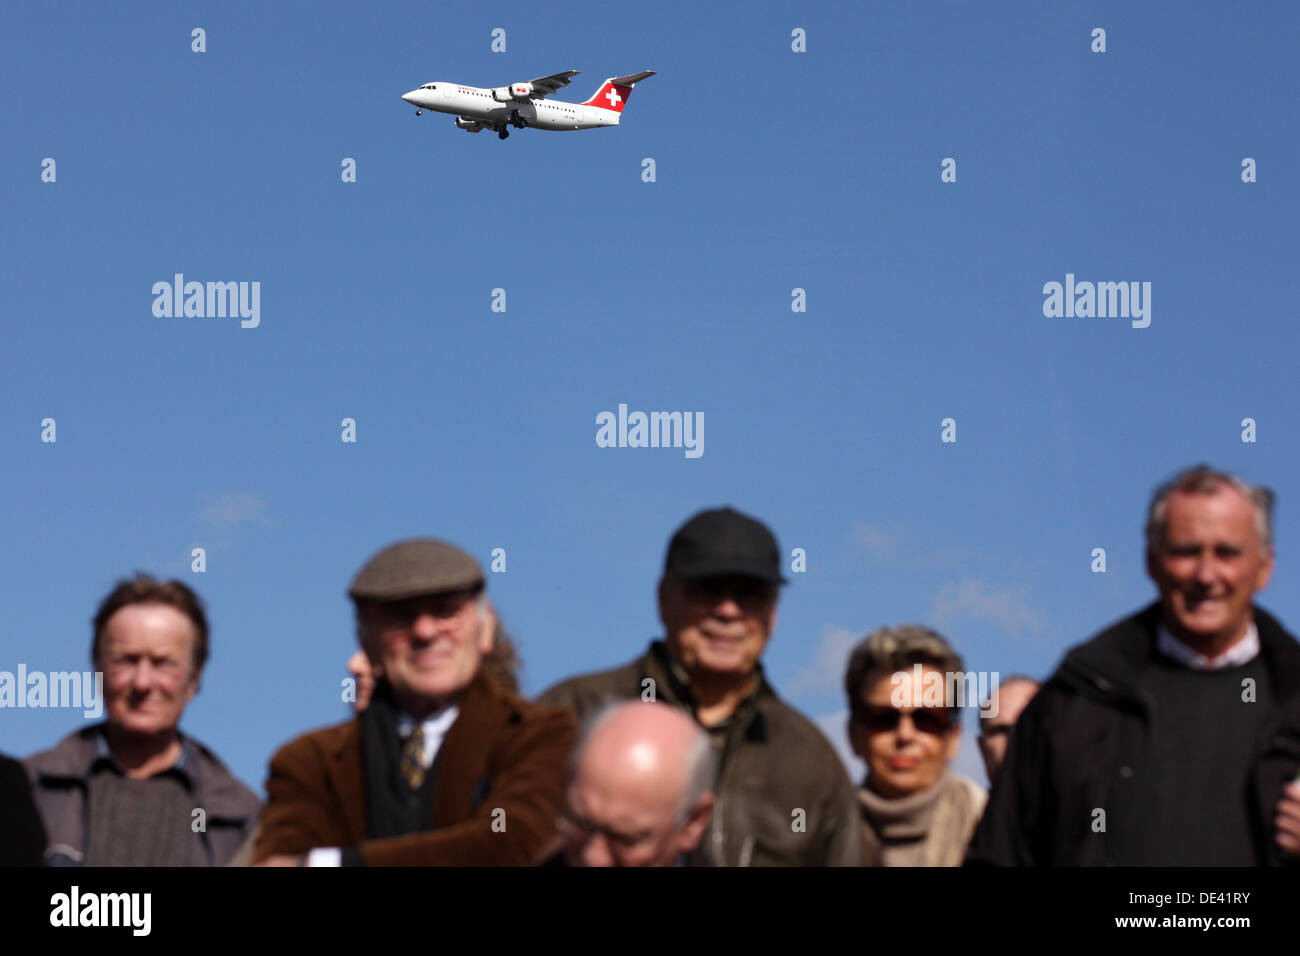 Hannover, Germany, SWISS aircraft over heads of peopleStock Photo